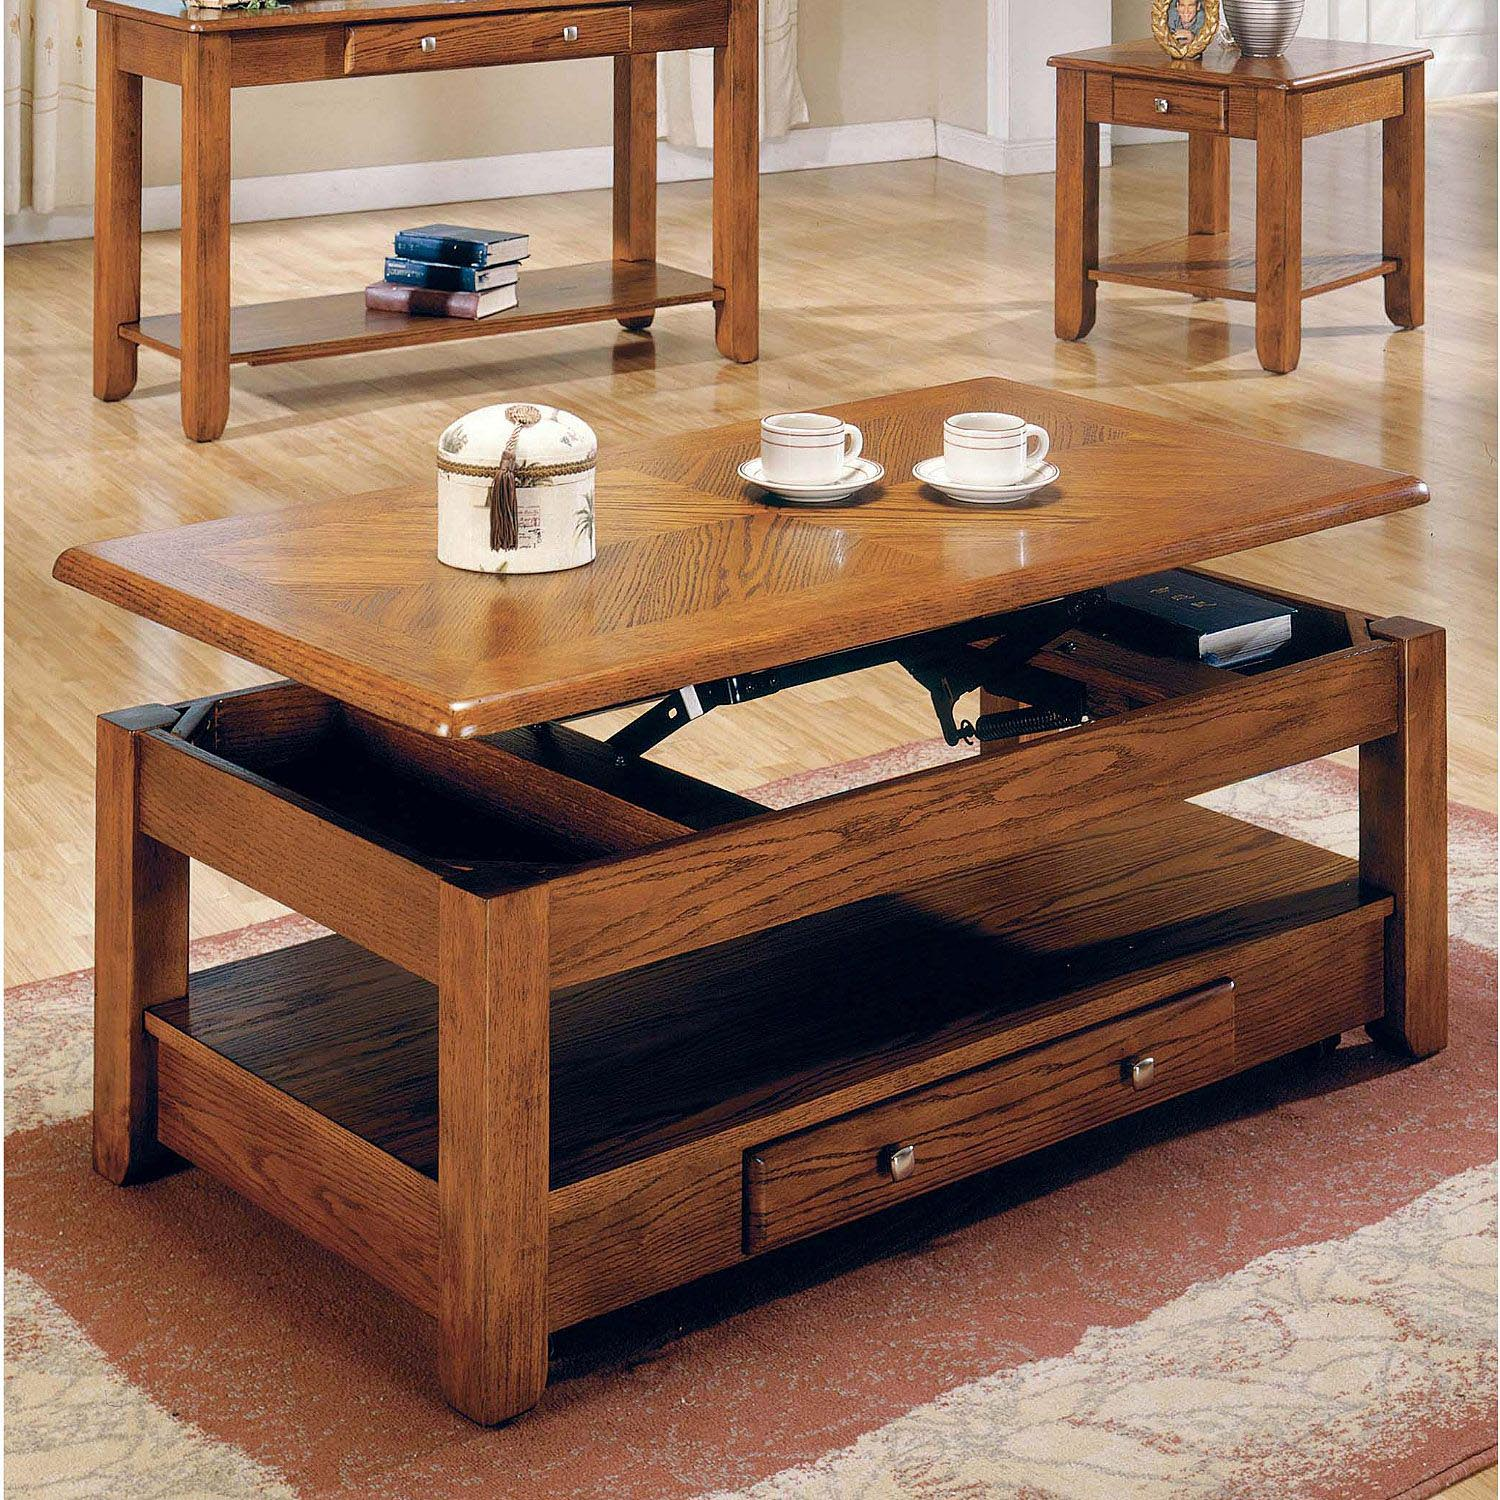 Low rise coffee table coffee table design ideas Coffee table top ideas